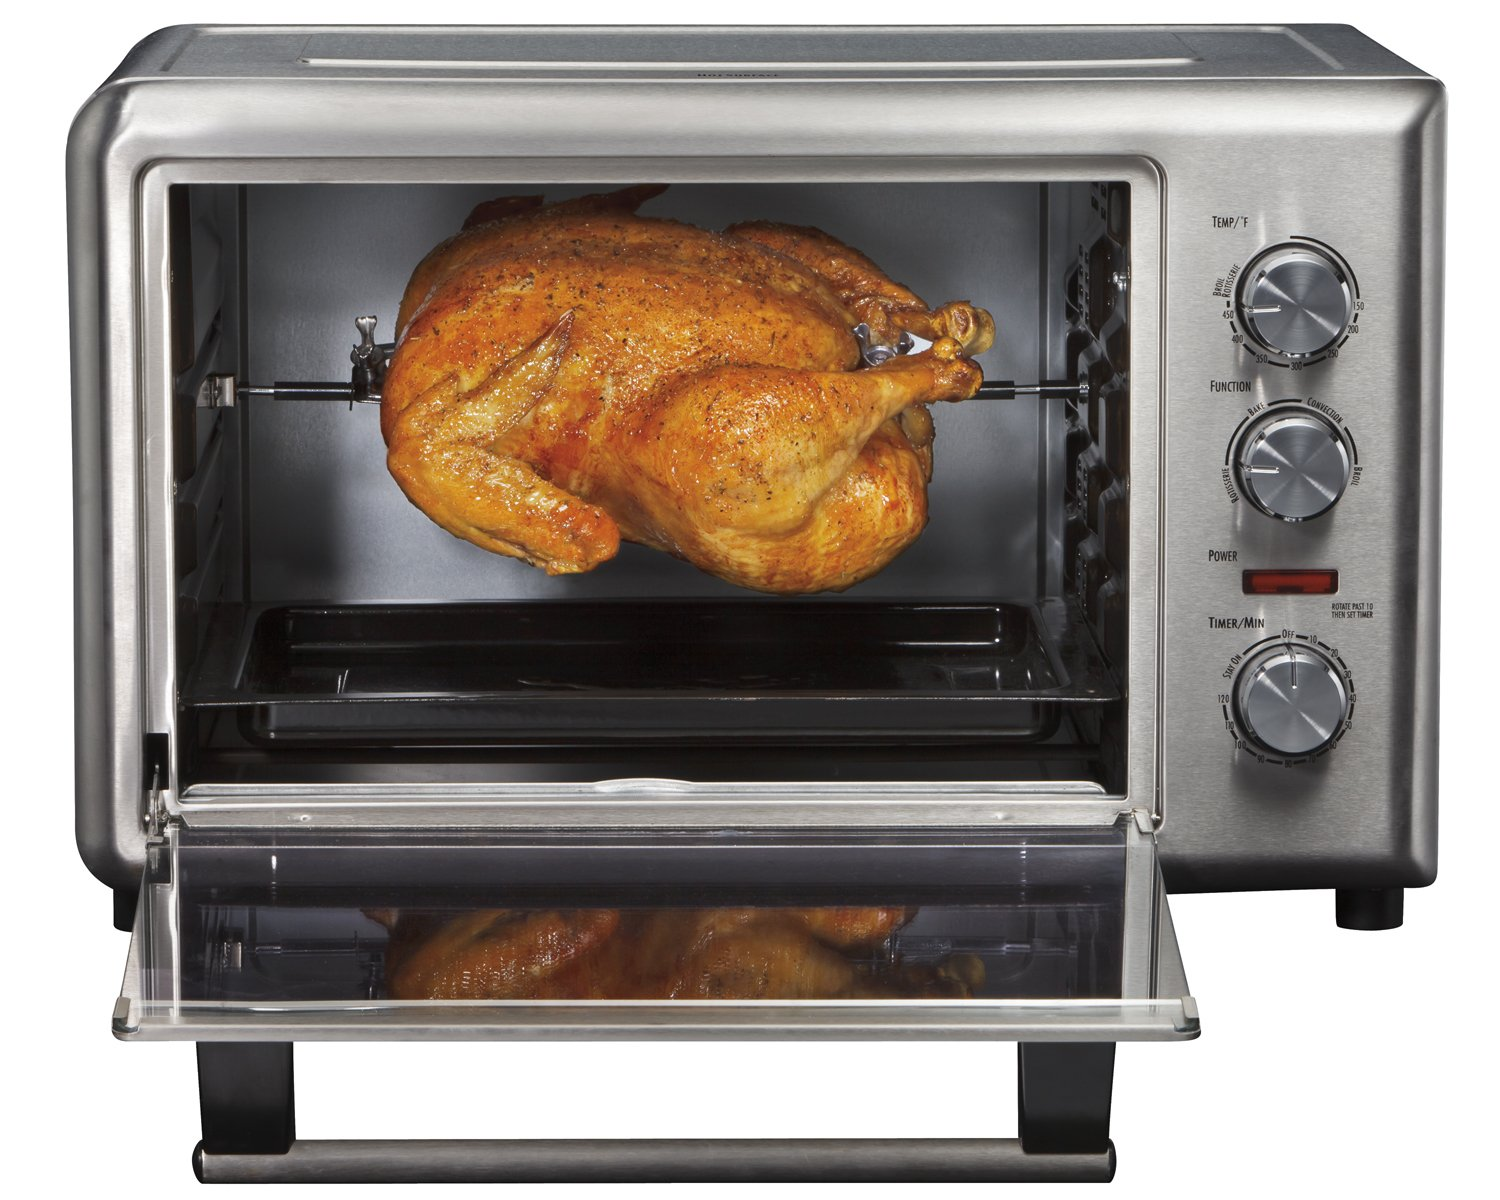 Hamilton Beach 31003A Countertop Oven with Convection & Rotisserie Review